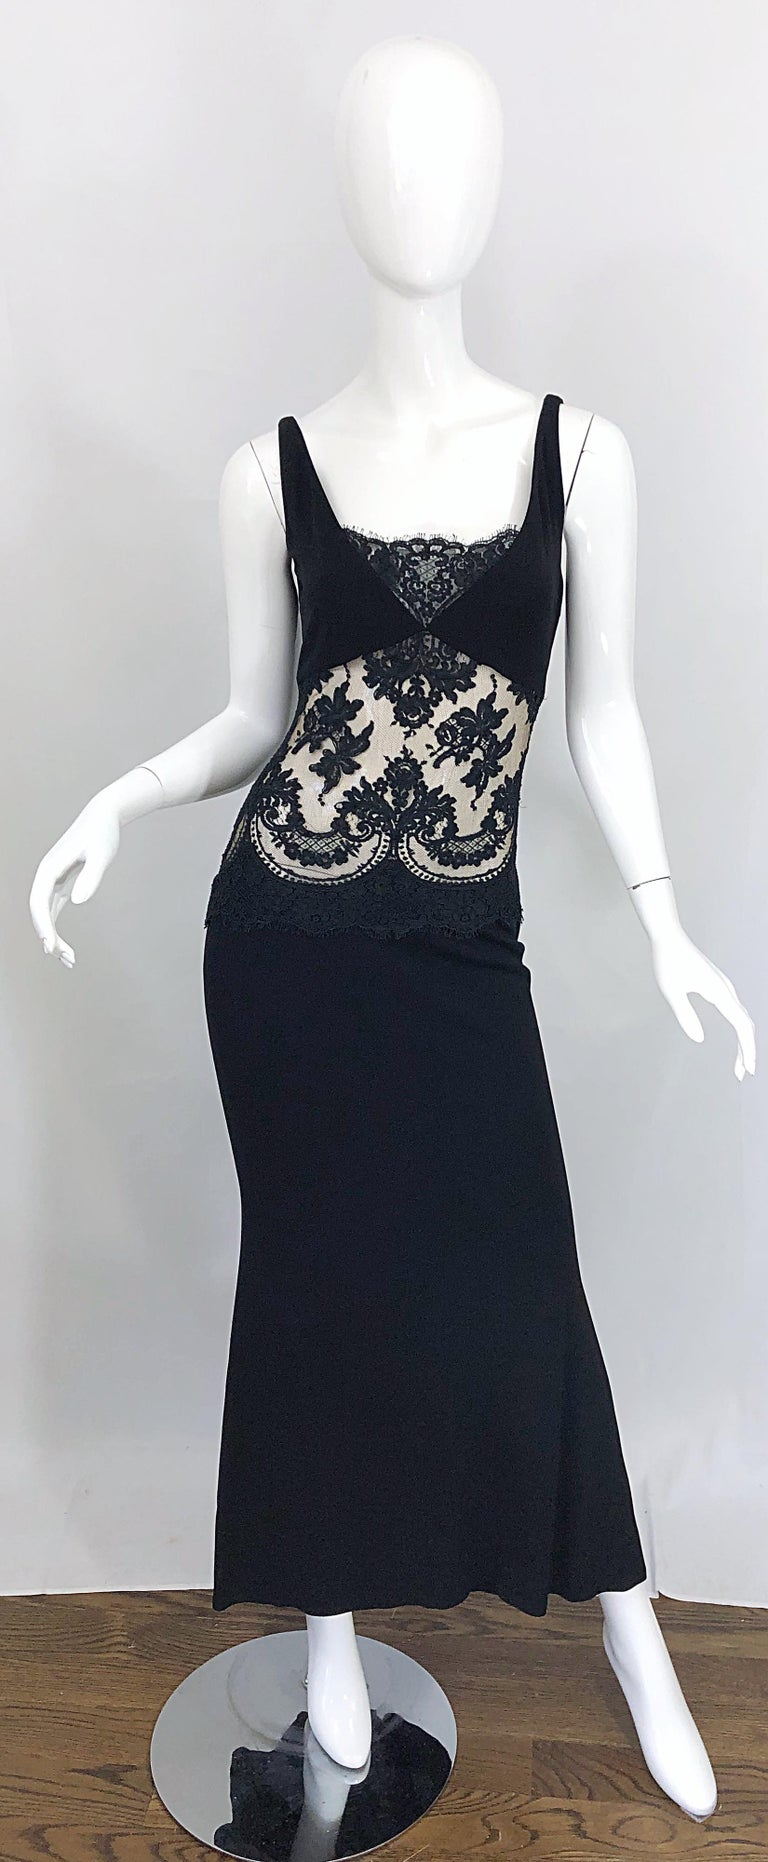 1990s Randolph Duke Black Sexy Lace Cut-Out Sleeveless Vintage 90s Evening Gown For Sale 8